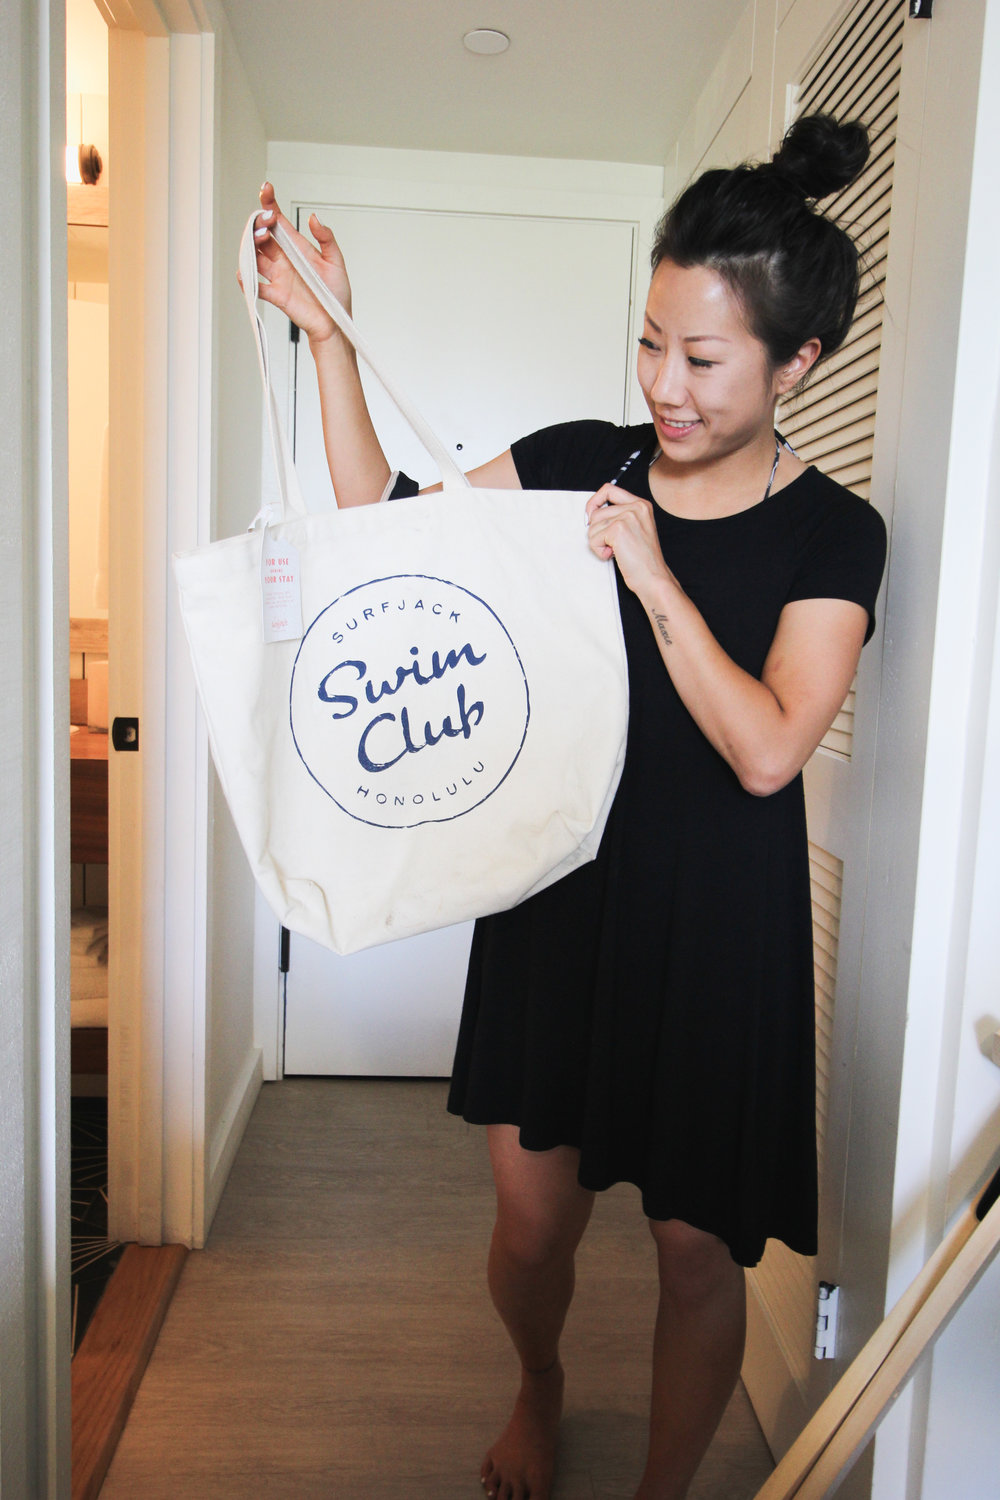 Laura with our Surfjack Swim Club tote